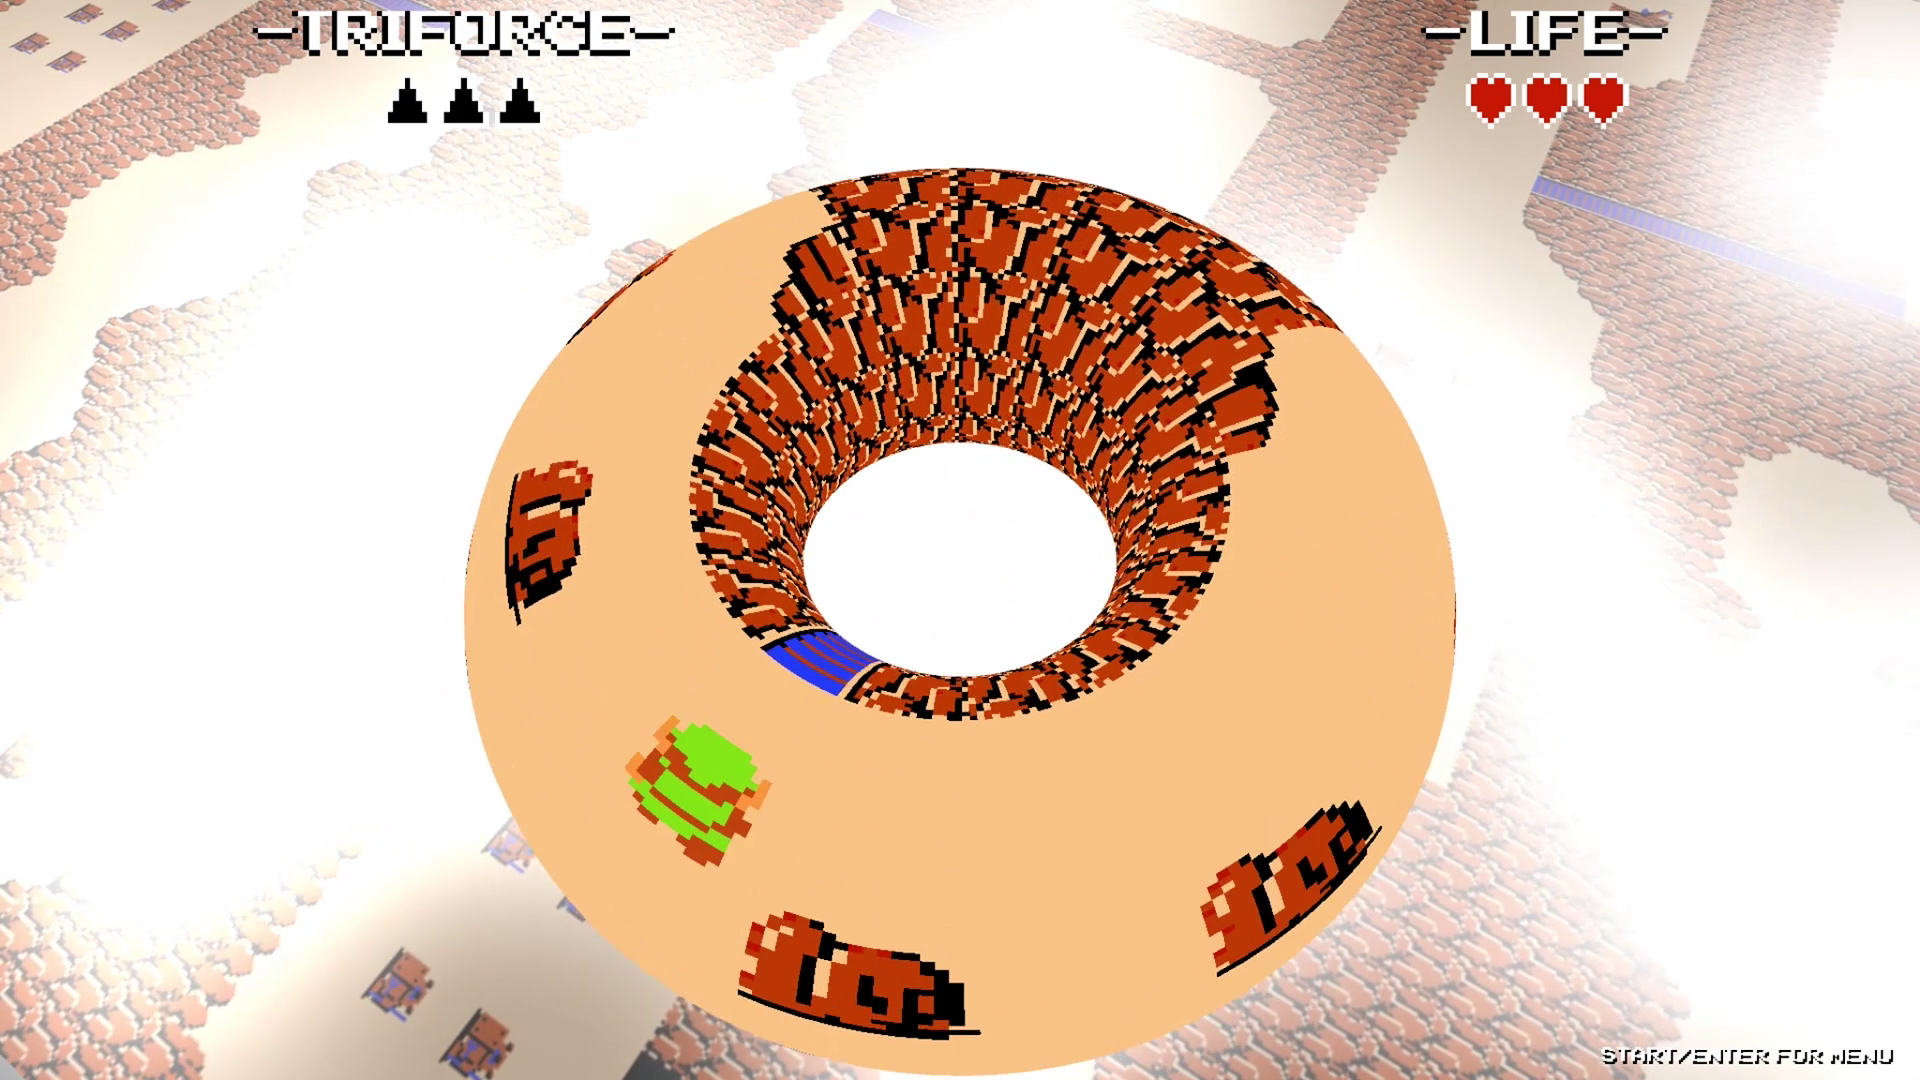 Triforce: The Topologies of Zelda is a trippy take on the NES masterpiece screenshot